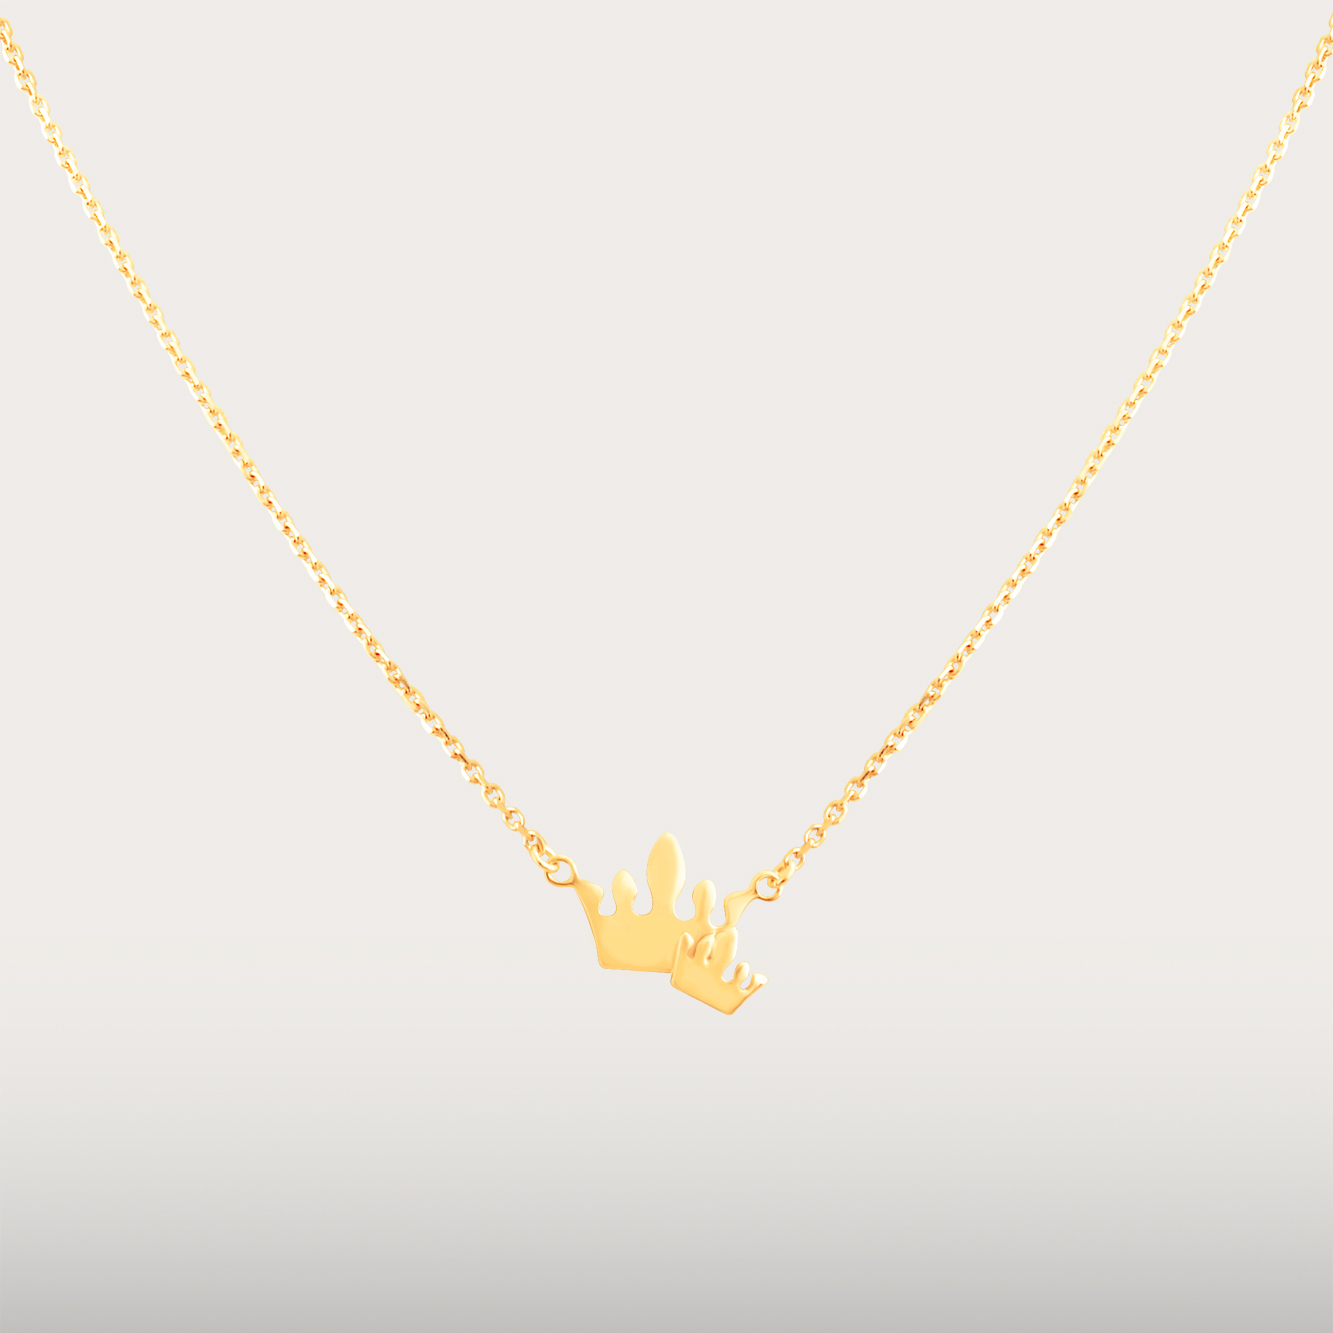 MILLIE MOLLY NECKLACE